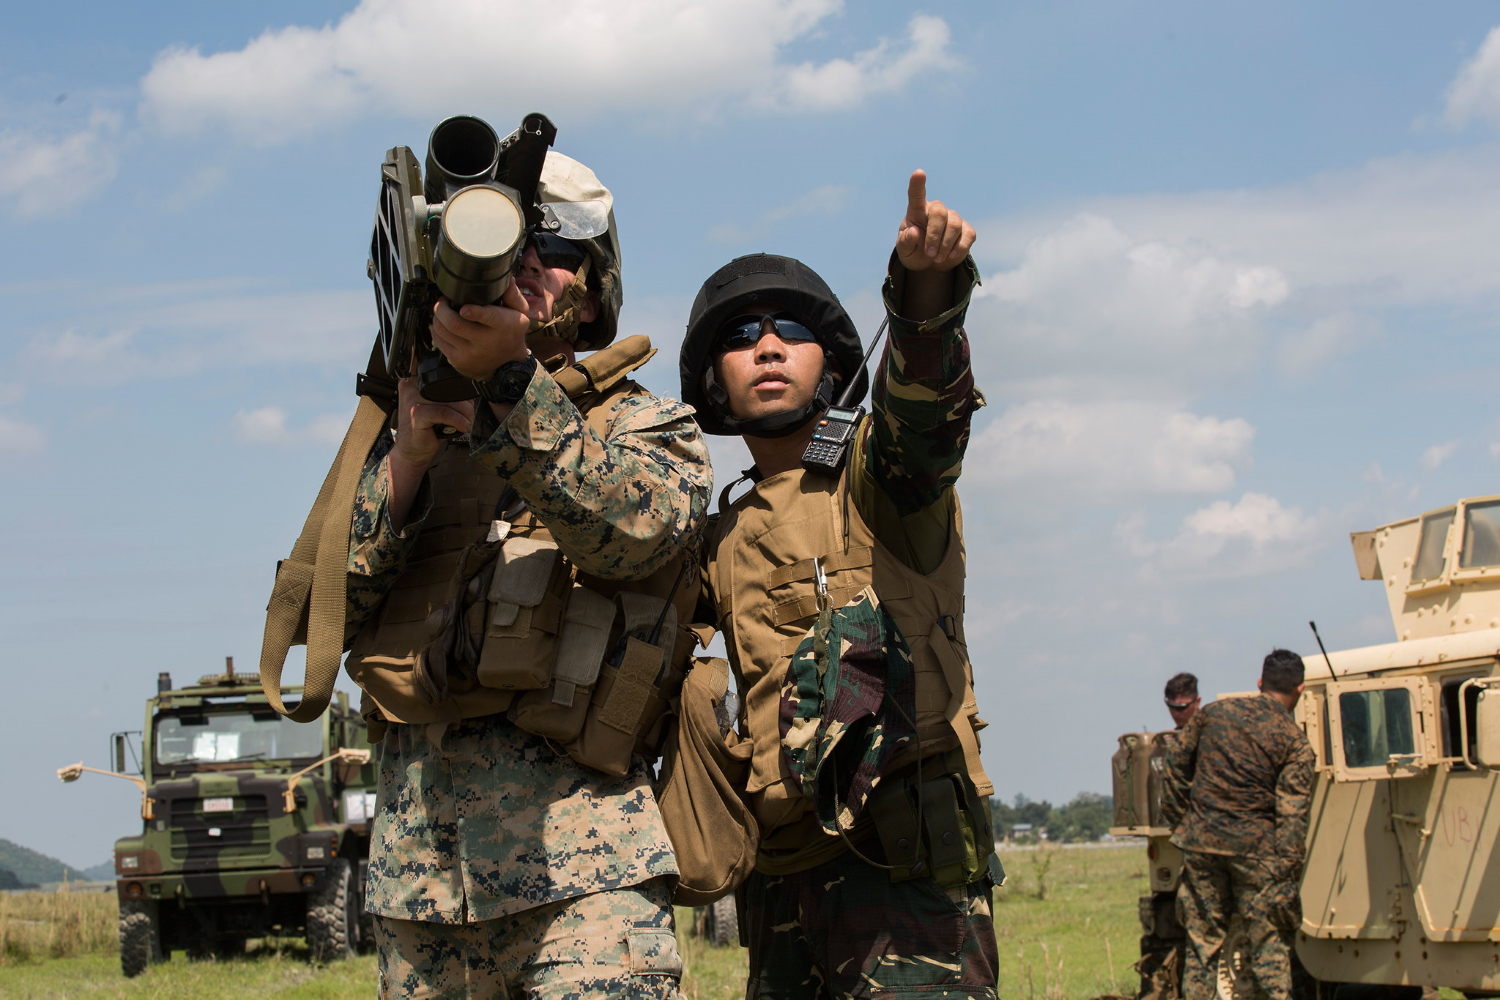 Philippine Airman 2nd Class Carlos P. Elamparo acts as a gunner for U.S. Marine Lance Cpl. Callen Shouse during a surface-to-air missile simulation as part of exercise KAMANDAG 3 at Colonel Ernesto P. Ravina Air Base, Philippines, Oct. 10, 2019. (Lance Cpl. Brienna Tuck/Marine Corps)